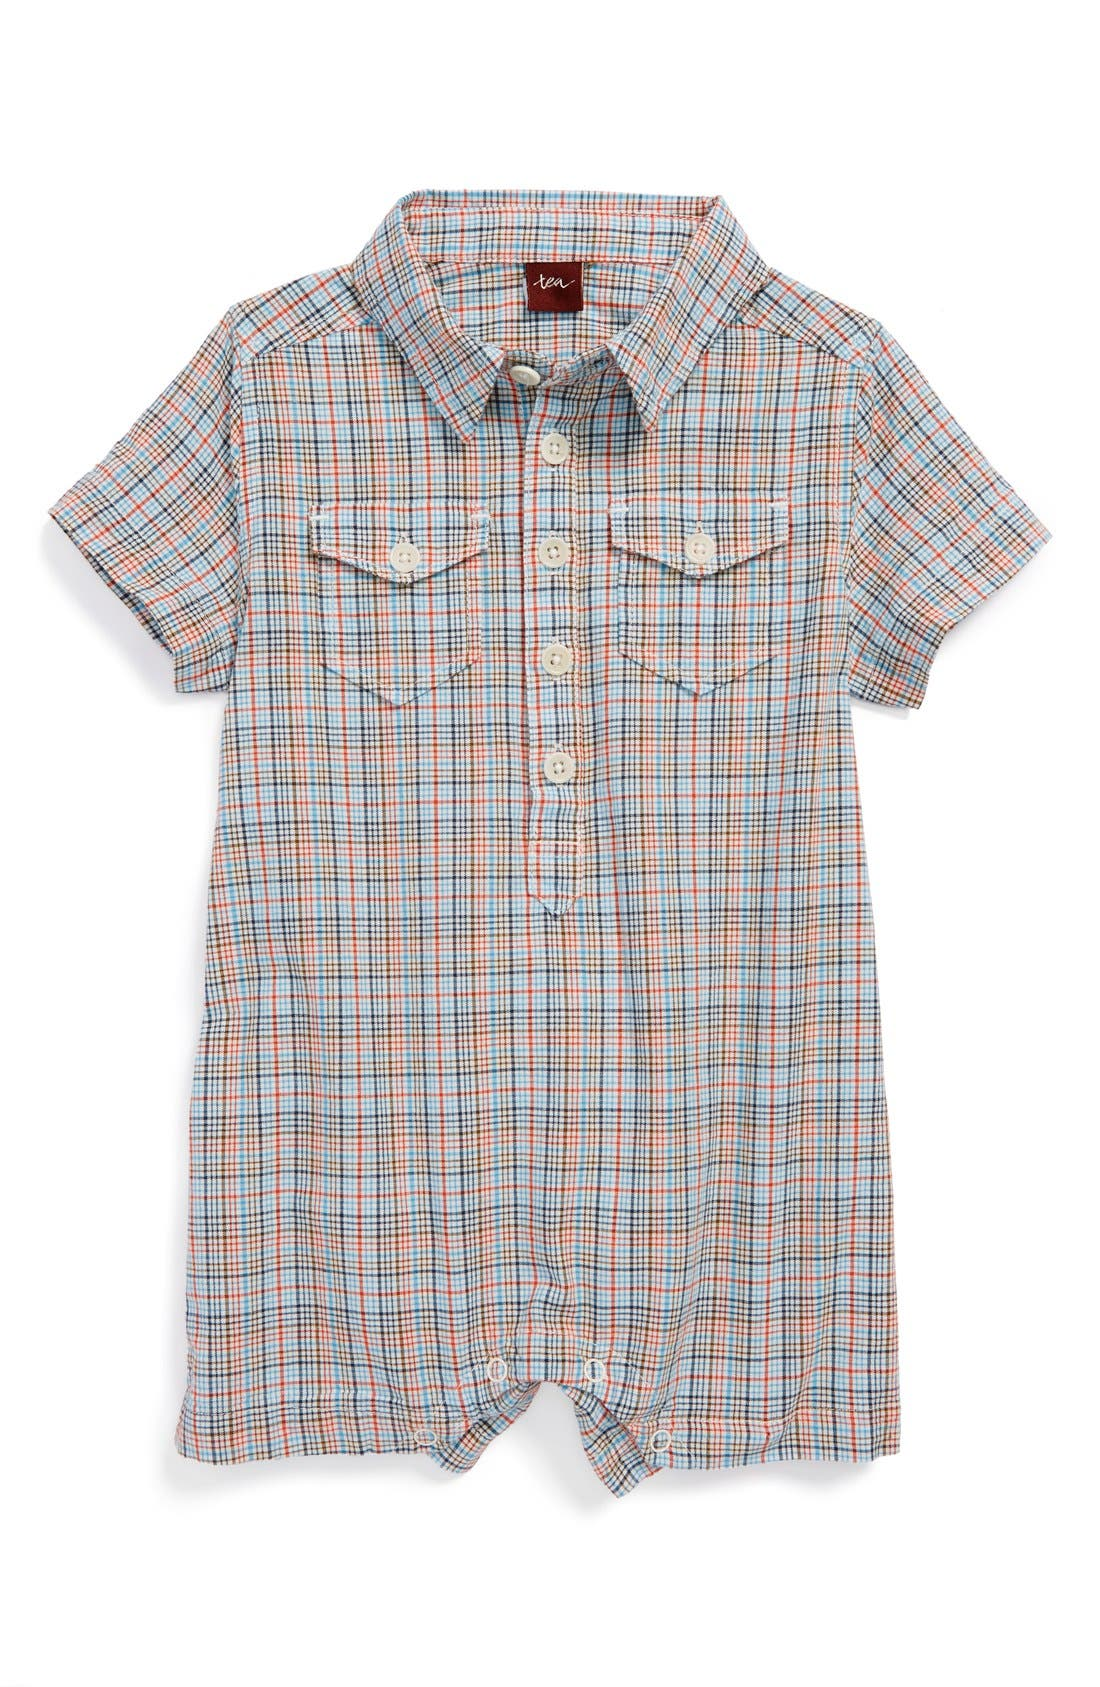 Alternate Image 1 Selected - Tea Collection 'Madras' Plaid Romper (Baby Boys)